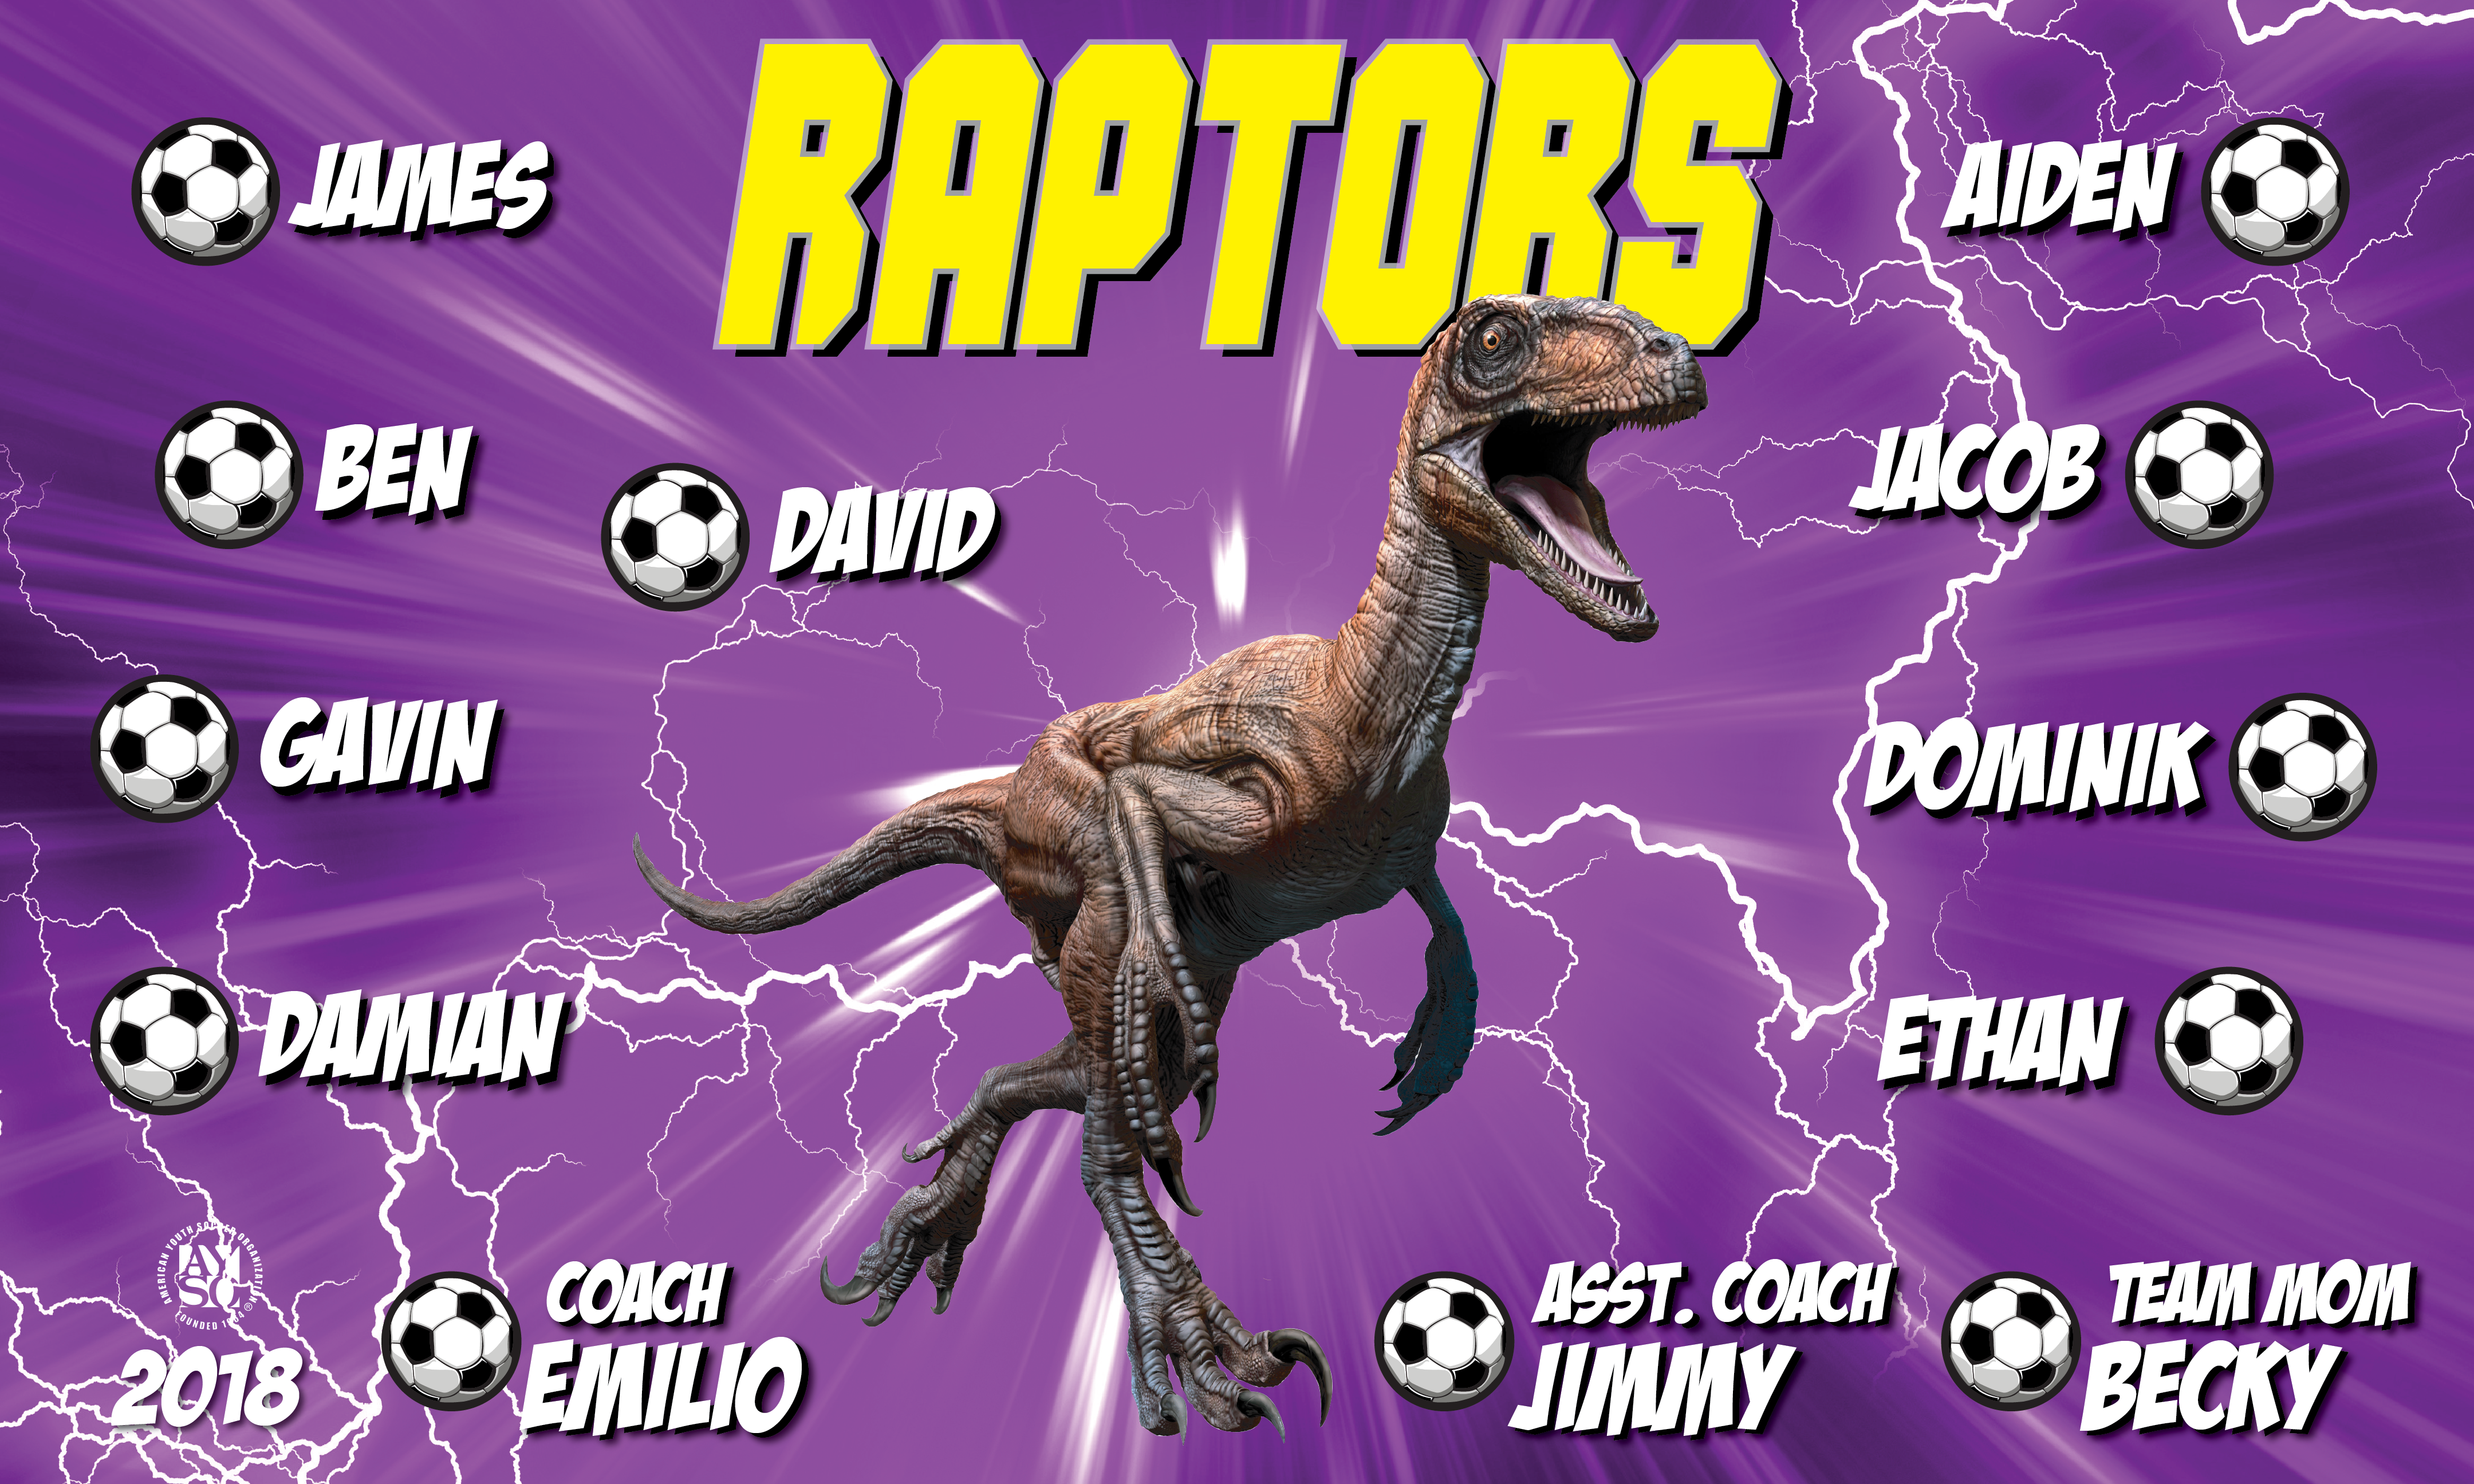 B2584 Purple Raptors 3x5 Banner